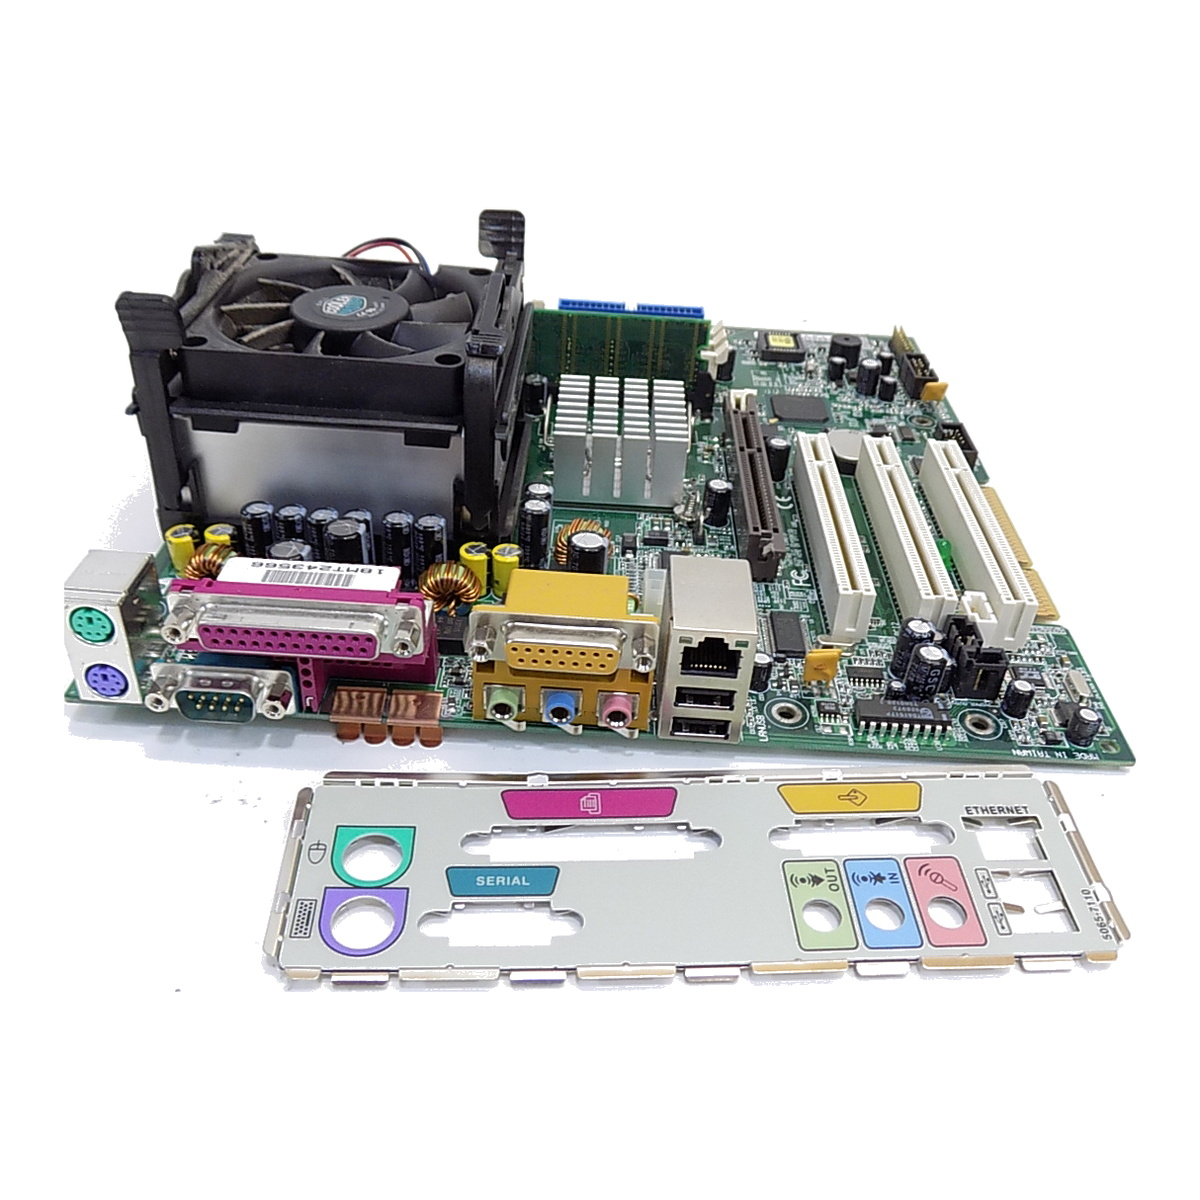 ASUS P4B-MX SERVER MOTHERBOARD WINDOWS 7 X64 DRIVER DOWNLOAD